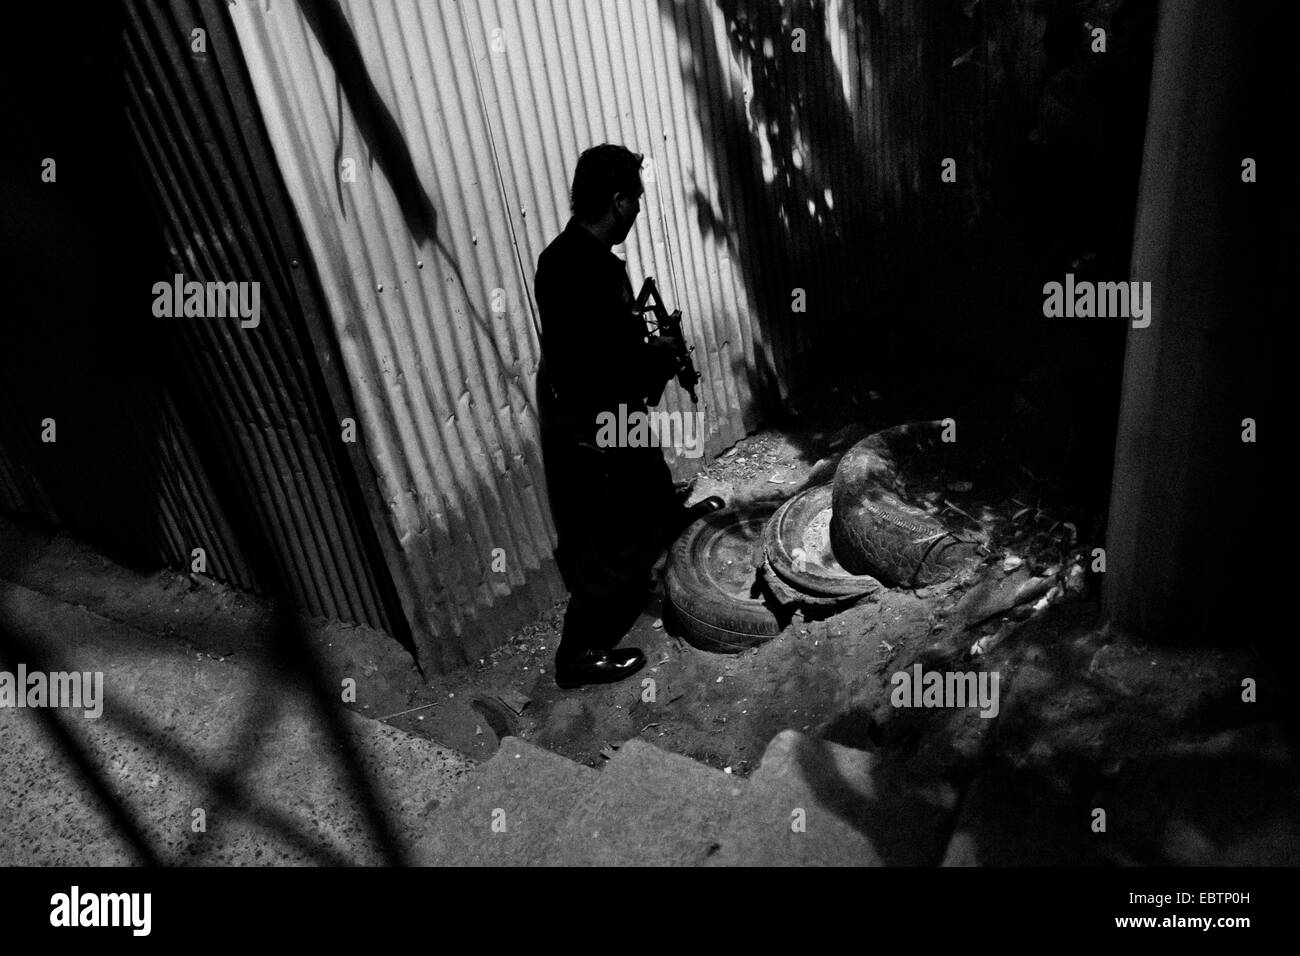 A policeman from the special emergency unit (Halcones) chases supposed gang members during the night in a gang neighbourhood of San Salvador, El Salvador, 15 December 2013. Stock Photo